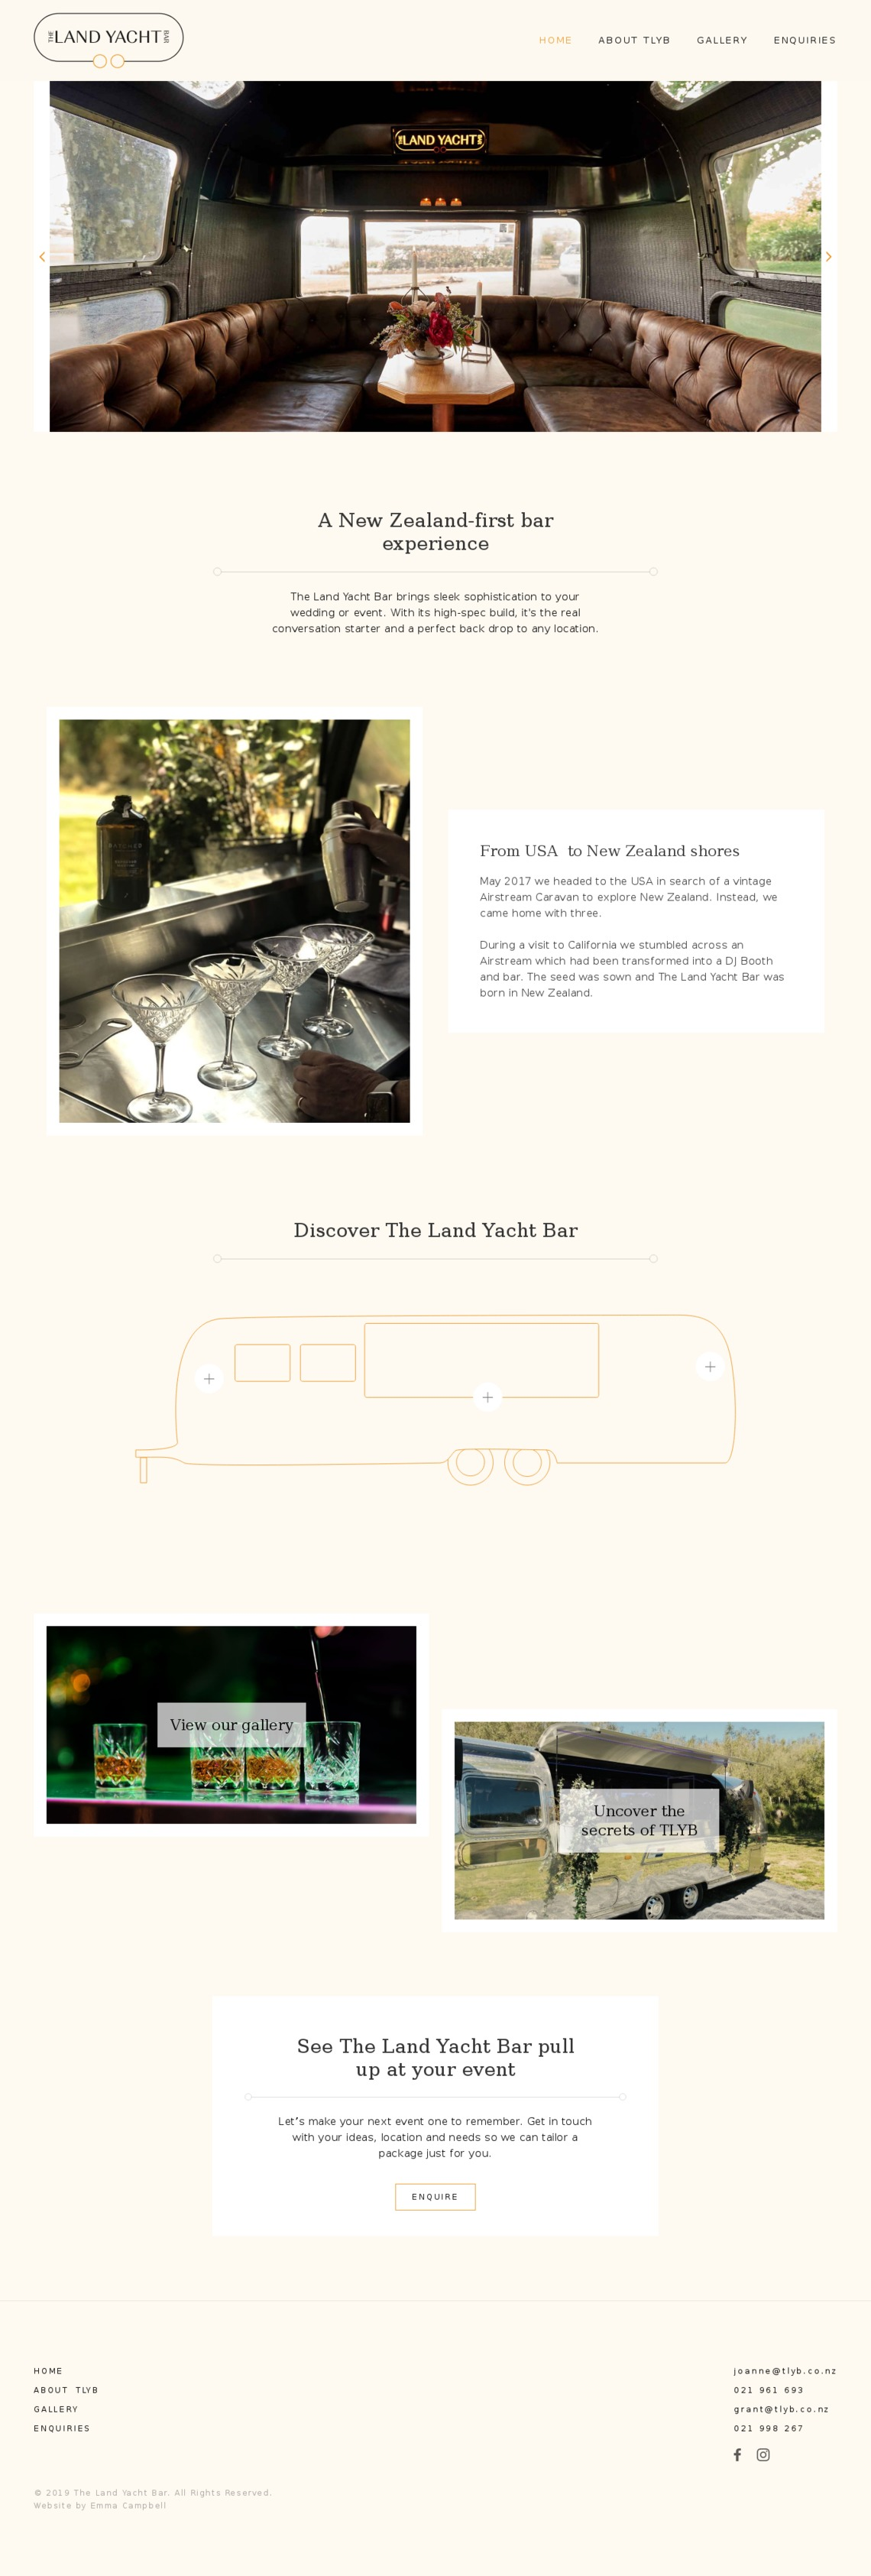 Home | The Land Yacht Bar